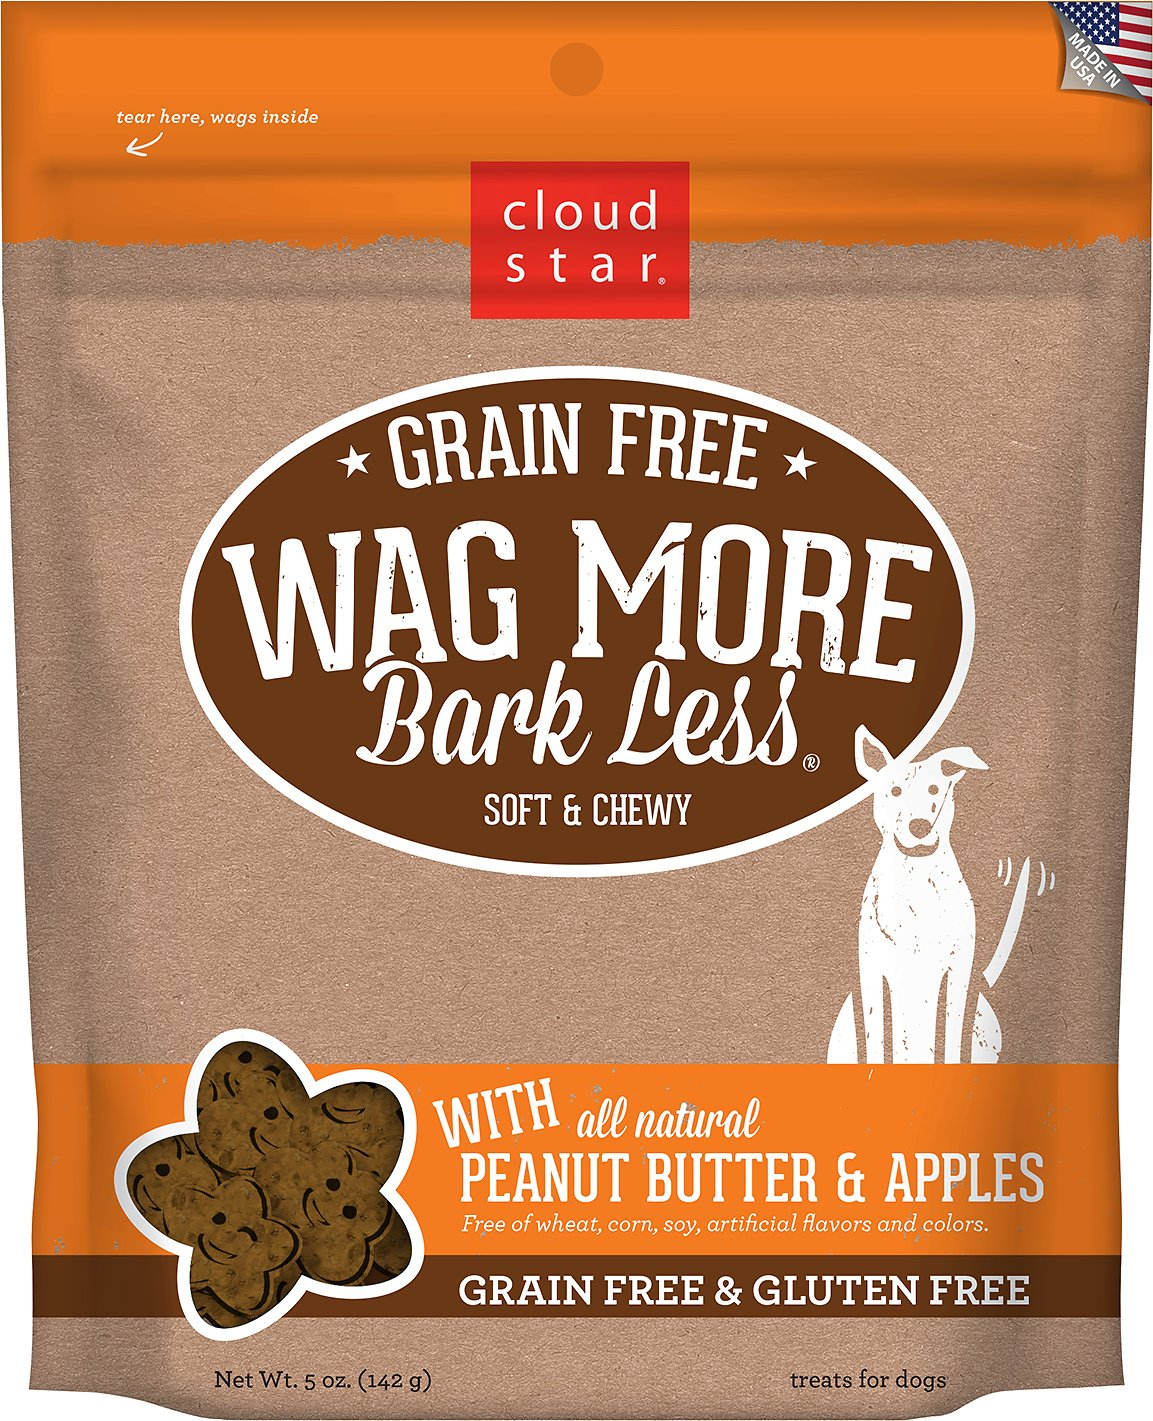 Cloud Star Wag More Bark Less Grain-Free Soft & Chewy with Peanut Butter & Apples Dog Treats, 5-oz bag